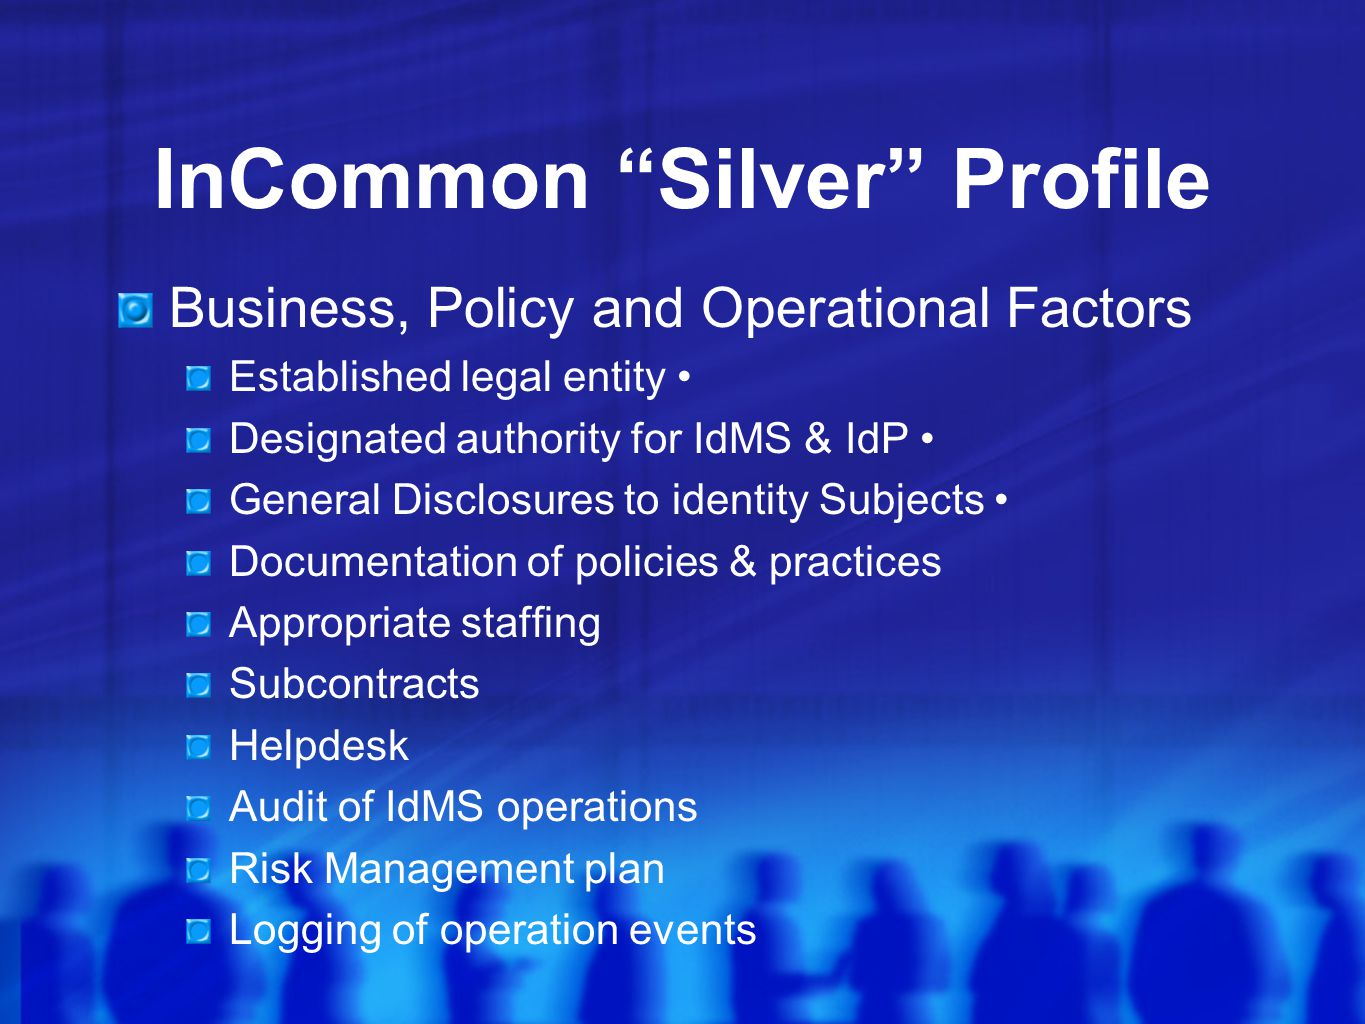 InCommon Silver Profile Business, Policy and Operational Factors Established legal entity Designated authority for IdMS & IdP General Disclosures to identity Subjects Documentation of policies & practices Appropriate staffing Subcontracts Helpdesk Audit of IdMS operations Risk Management plan Logging of operation events